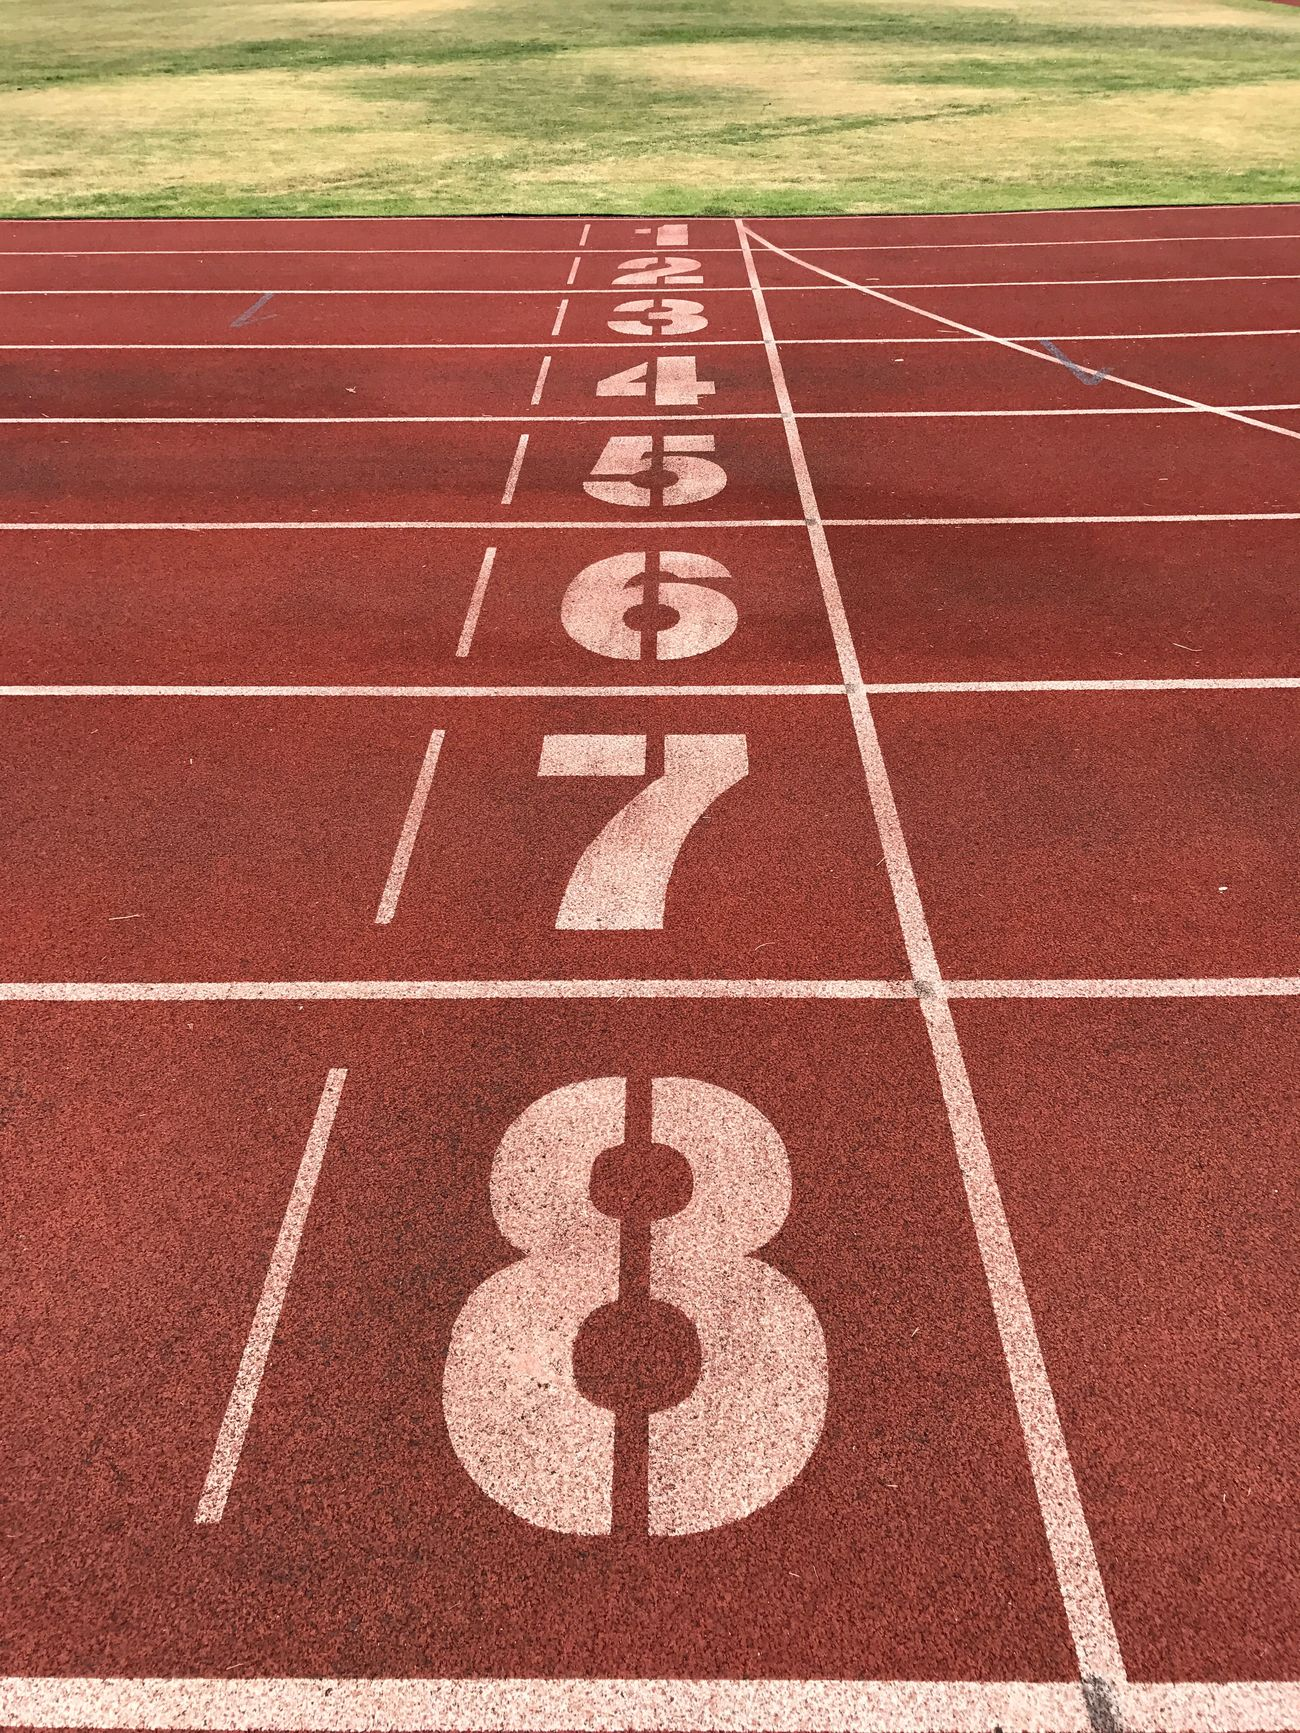 Number Running Track Track And Field Sports Track Sports Race Outdoors Sport No People Competition Day Starting Line Finish Line